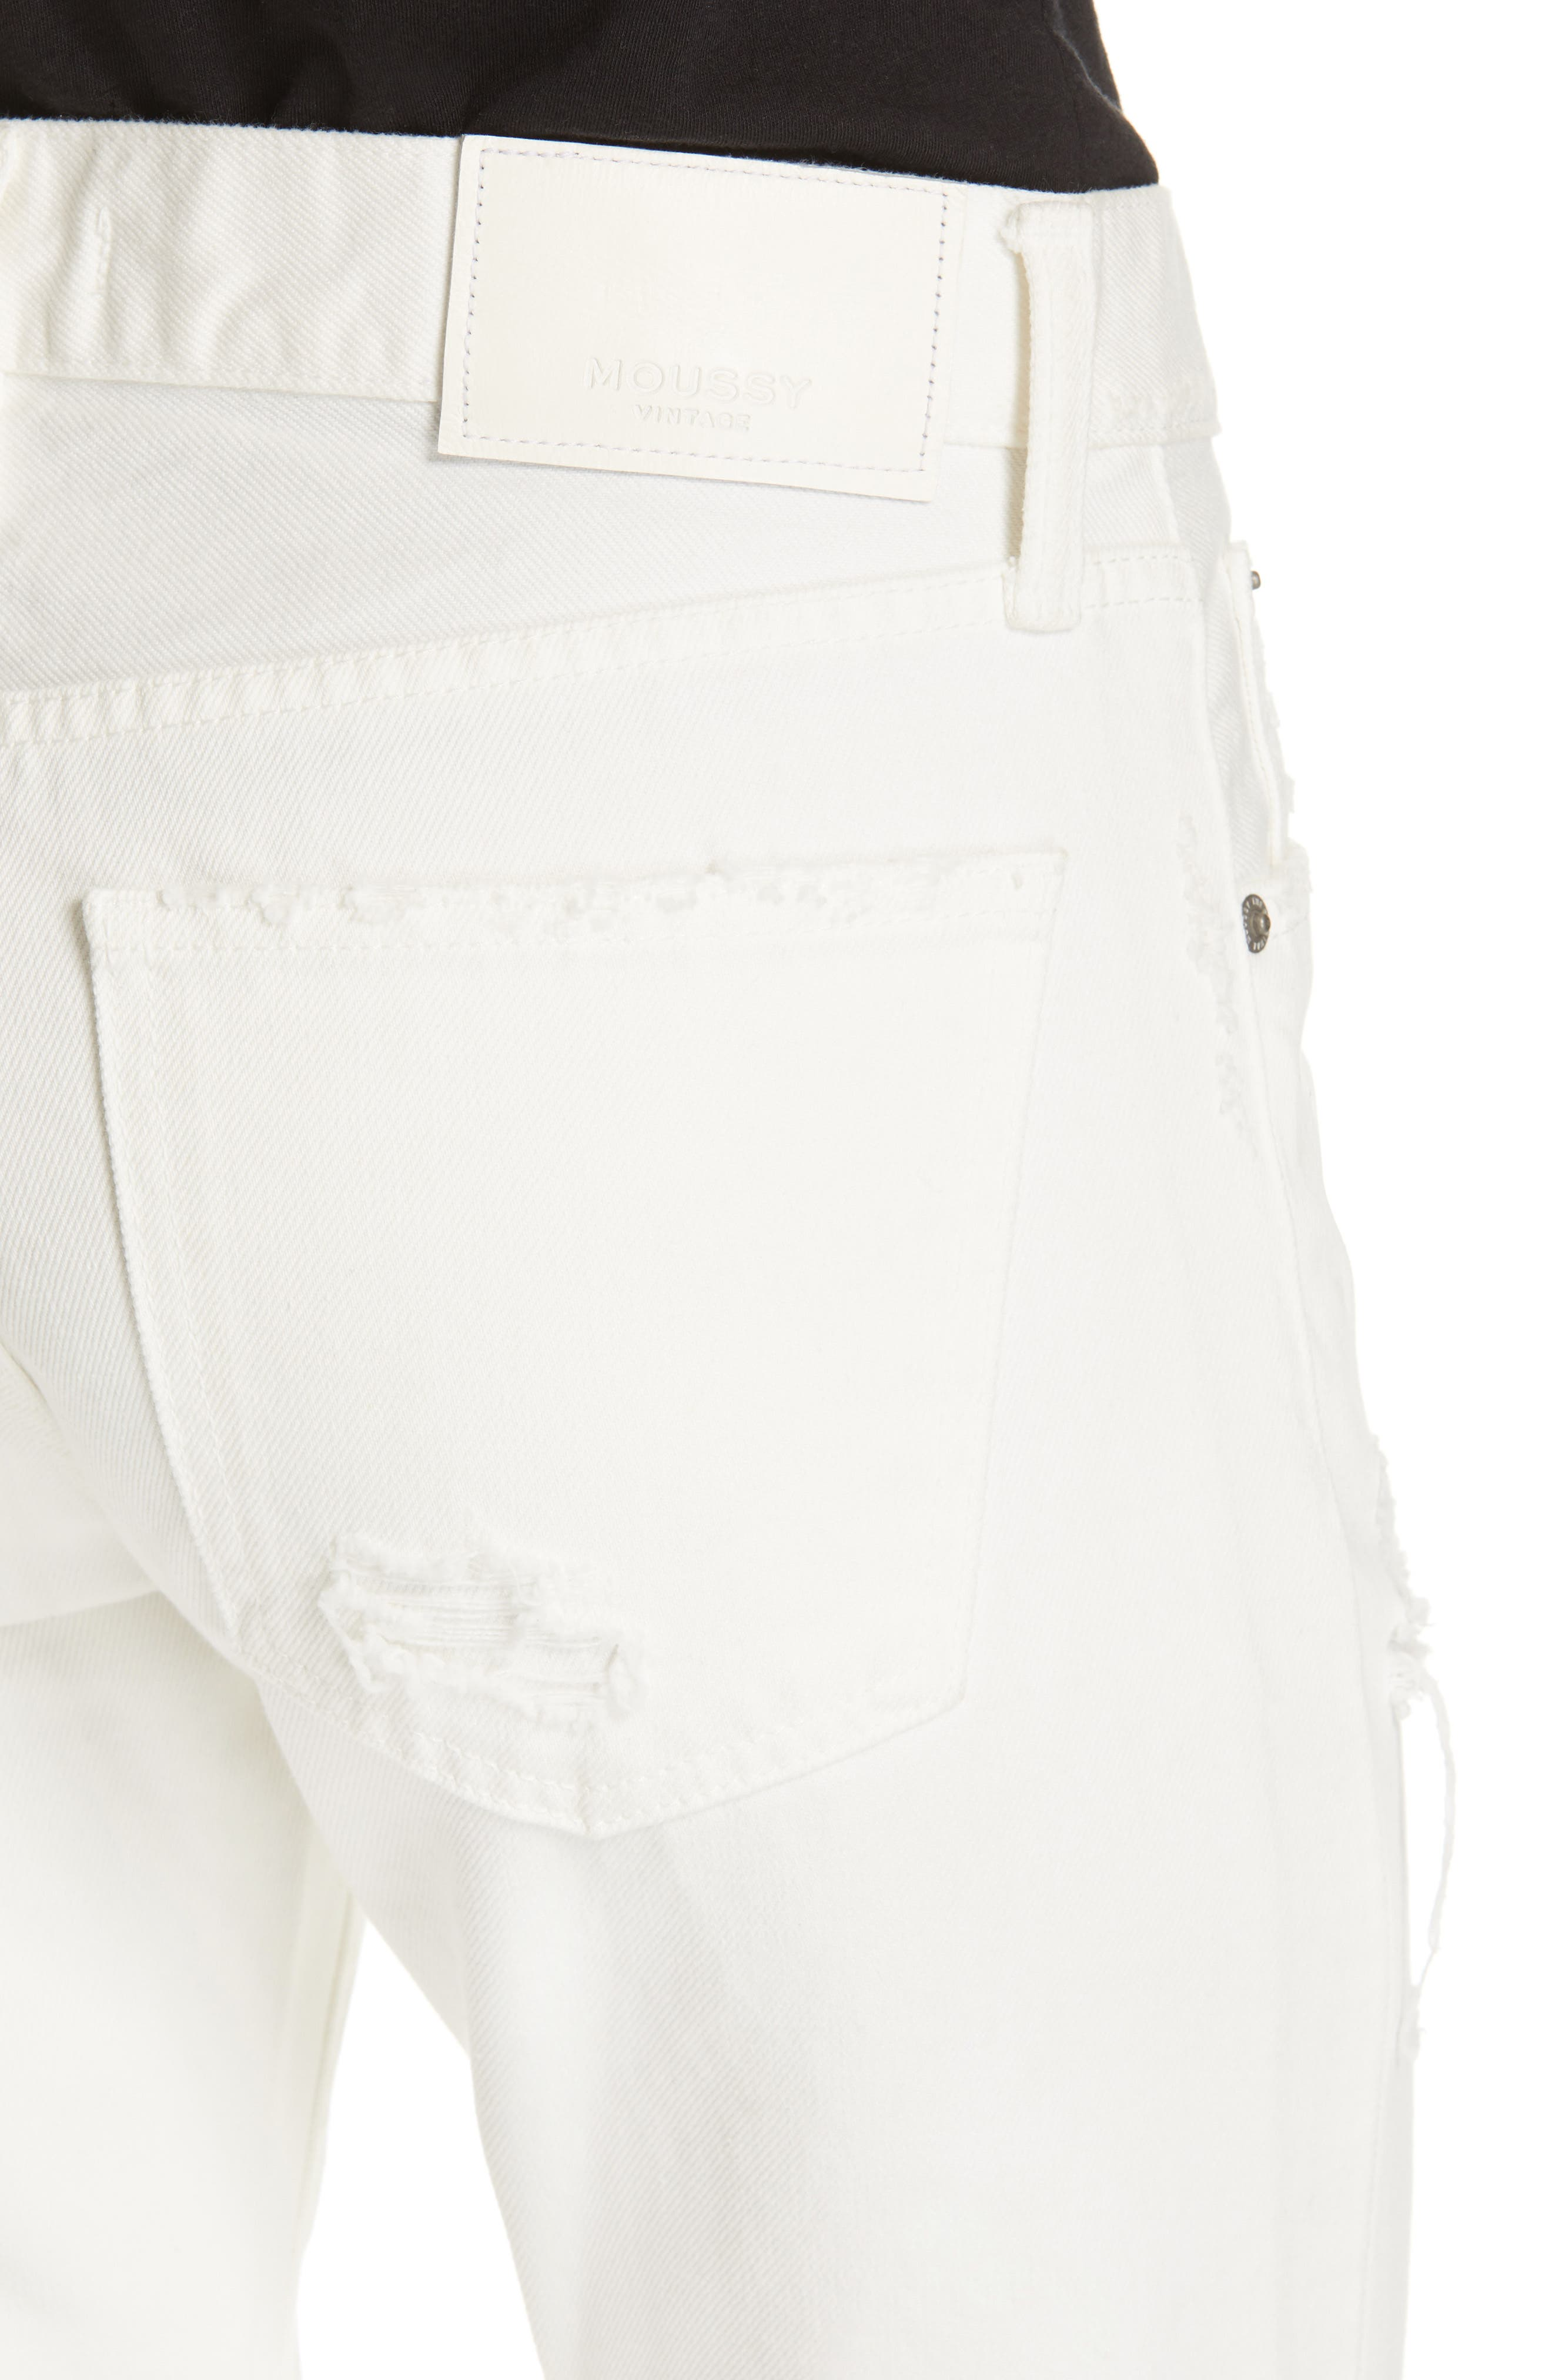 MOUSSY VINTAGE, Kelley Tapered Crop Jeans, Alternate thumbnail 4, color, WHITE